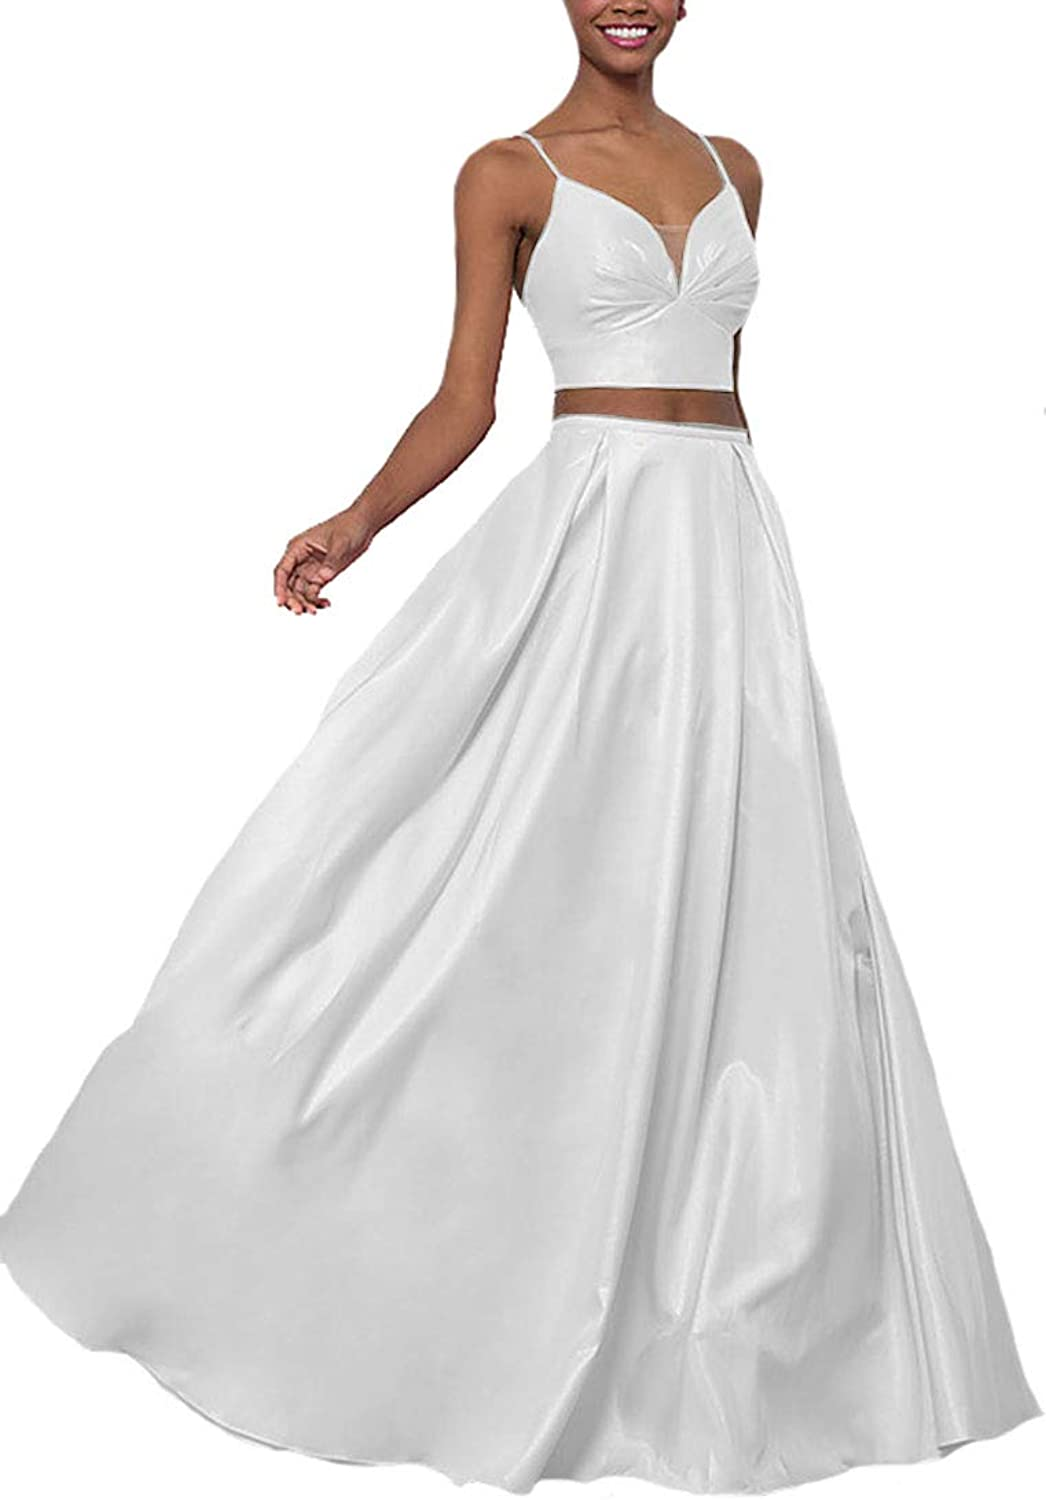 Lilyla Long Prom Dresses Two Piece ALine VNeck Satin Evening Party Gowns with Pockets